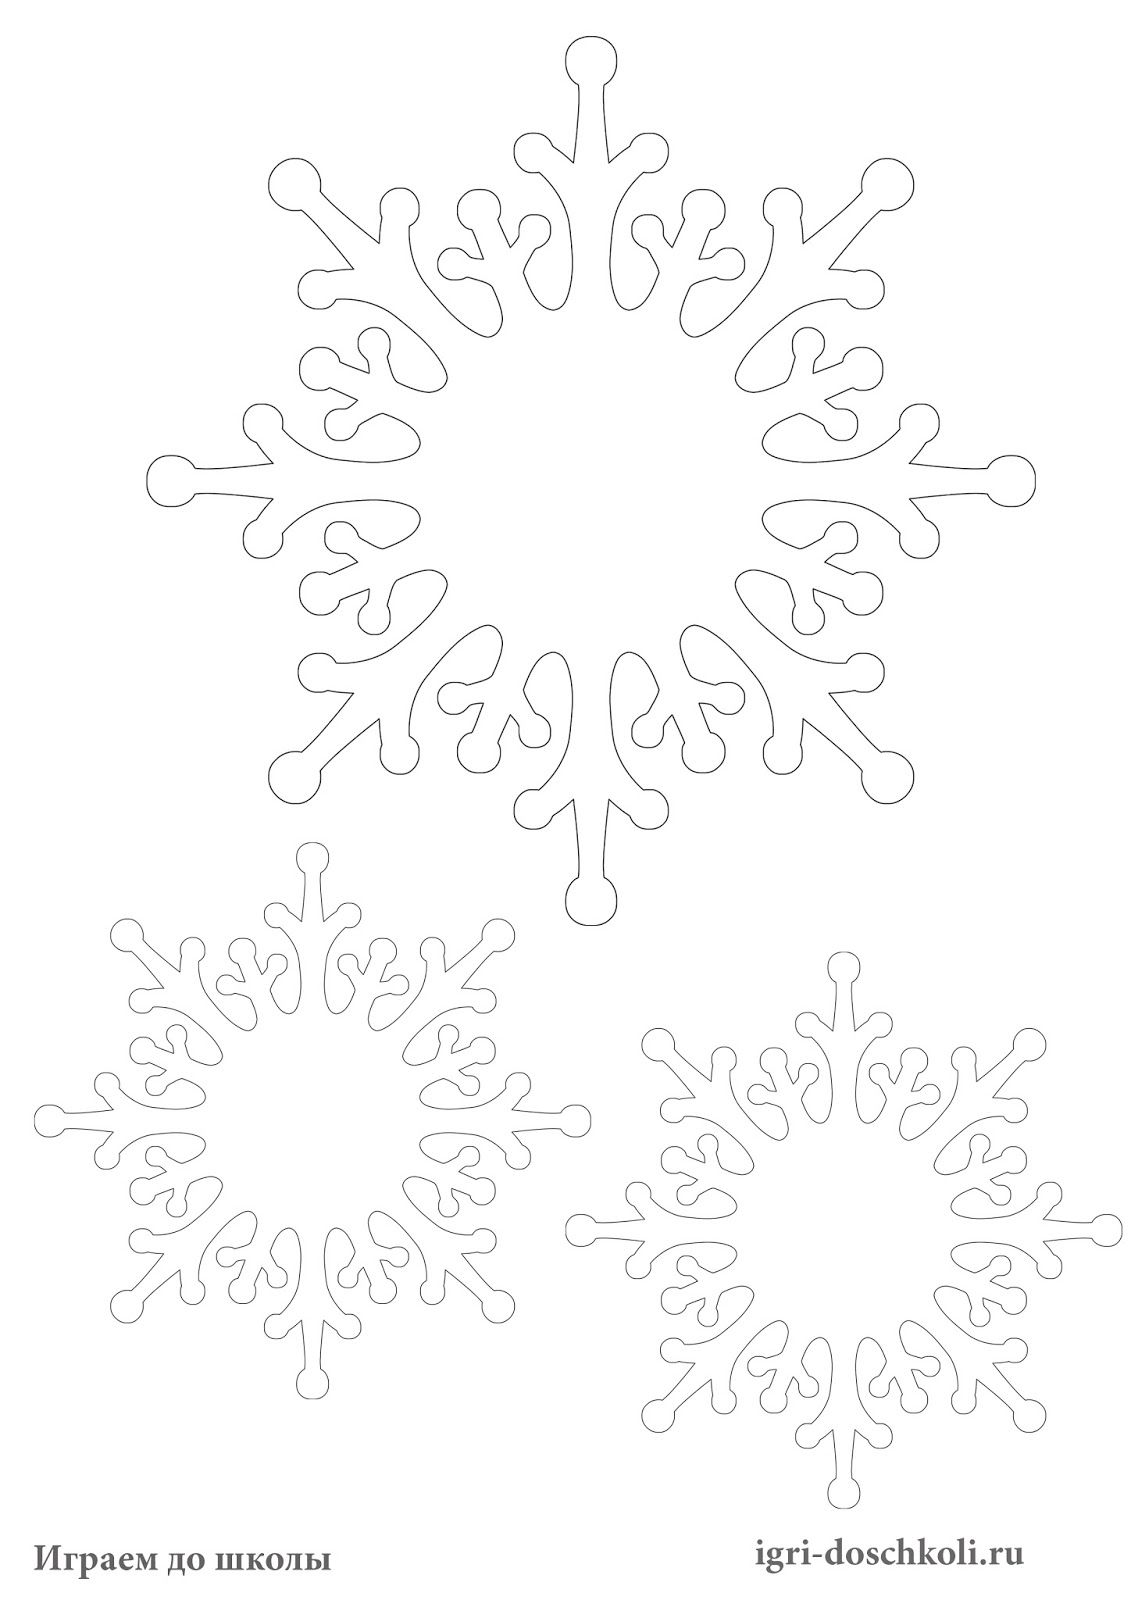 Vytynanka for the New Year 2019 patterns Pigs, Santa Claus and other New Years vytynanka